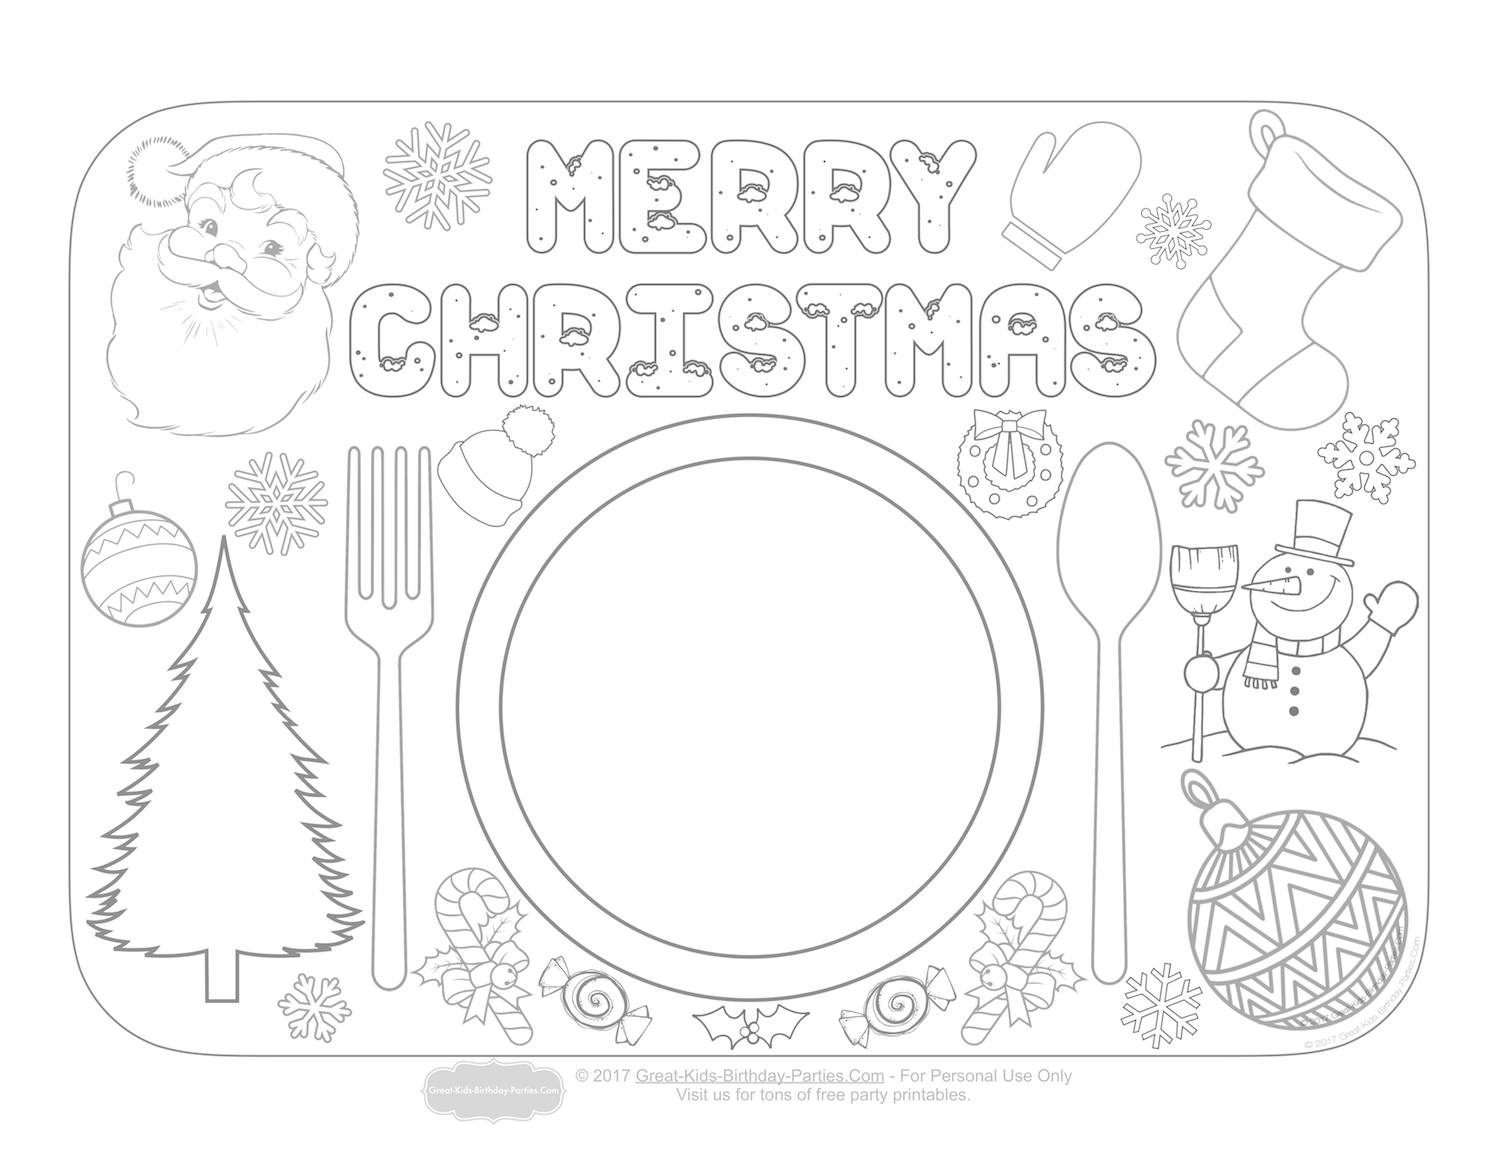 Print An Color Pictures Of Santa Christmas Tree Snowman Stocking Wreath And Candy Canes To Download Our Free Printable Right Click You Mouse